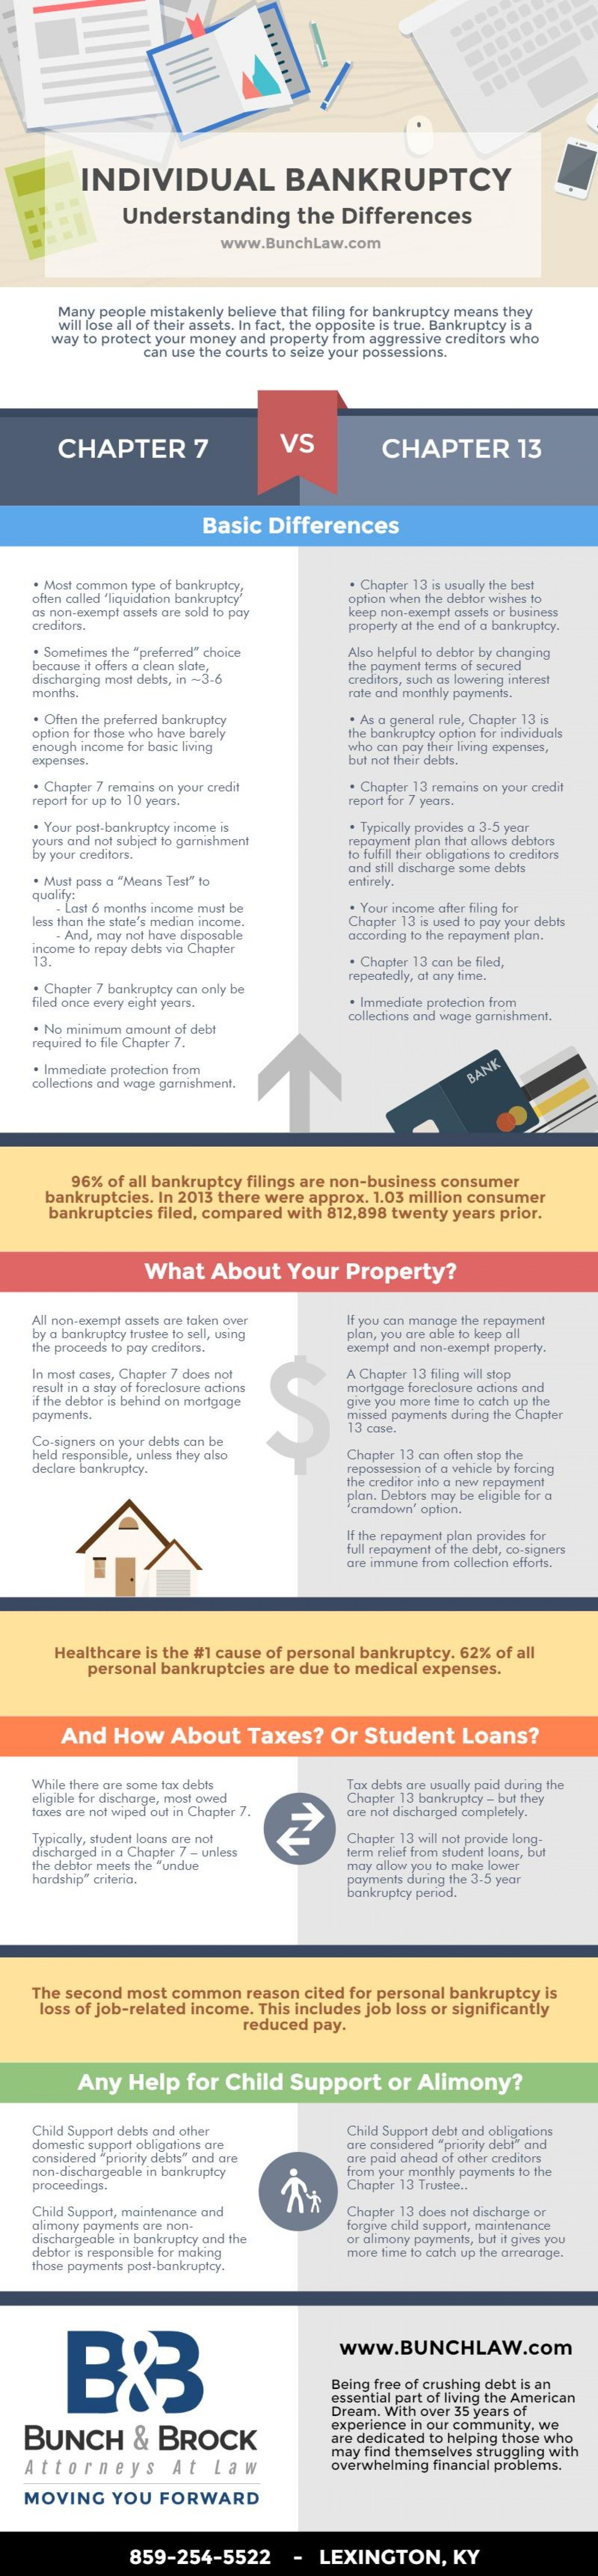 The Difference Between Chapter 7 And Chapter 13 Bankruptcy Chapter 13 Home Equity Line Bankruptcy